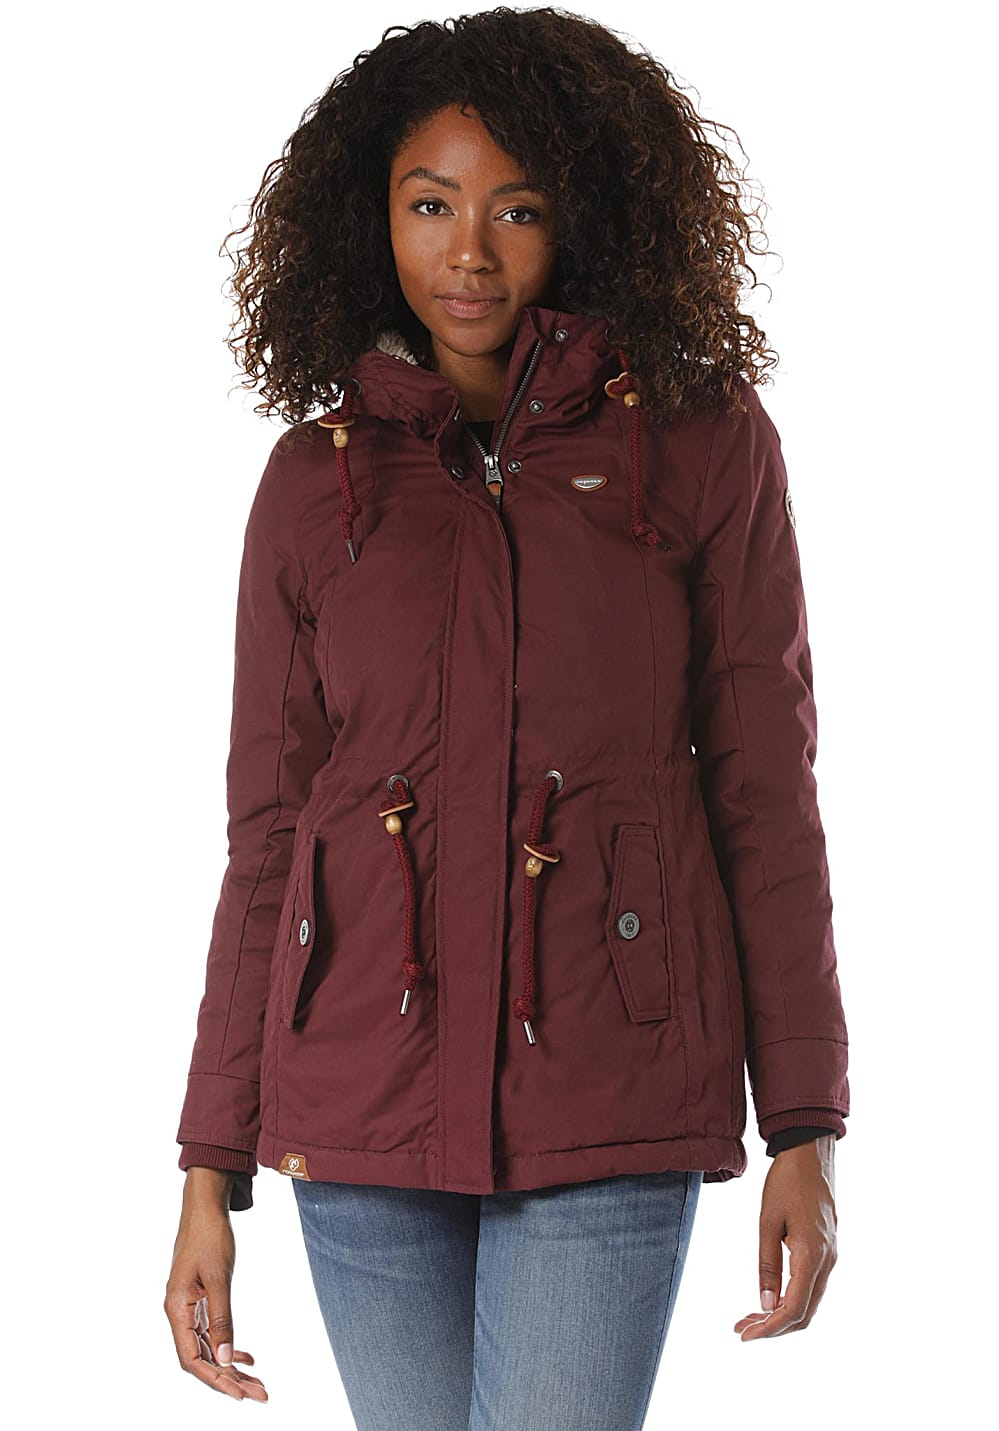 Jacken - ragwear Monadis Jacke für Damen Rot  - Onlineshop Planet Sports